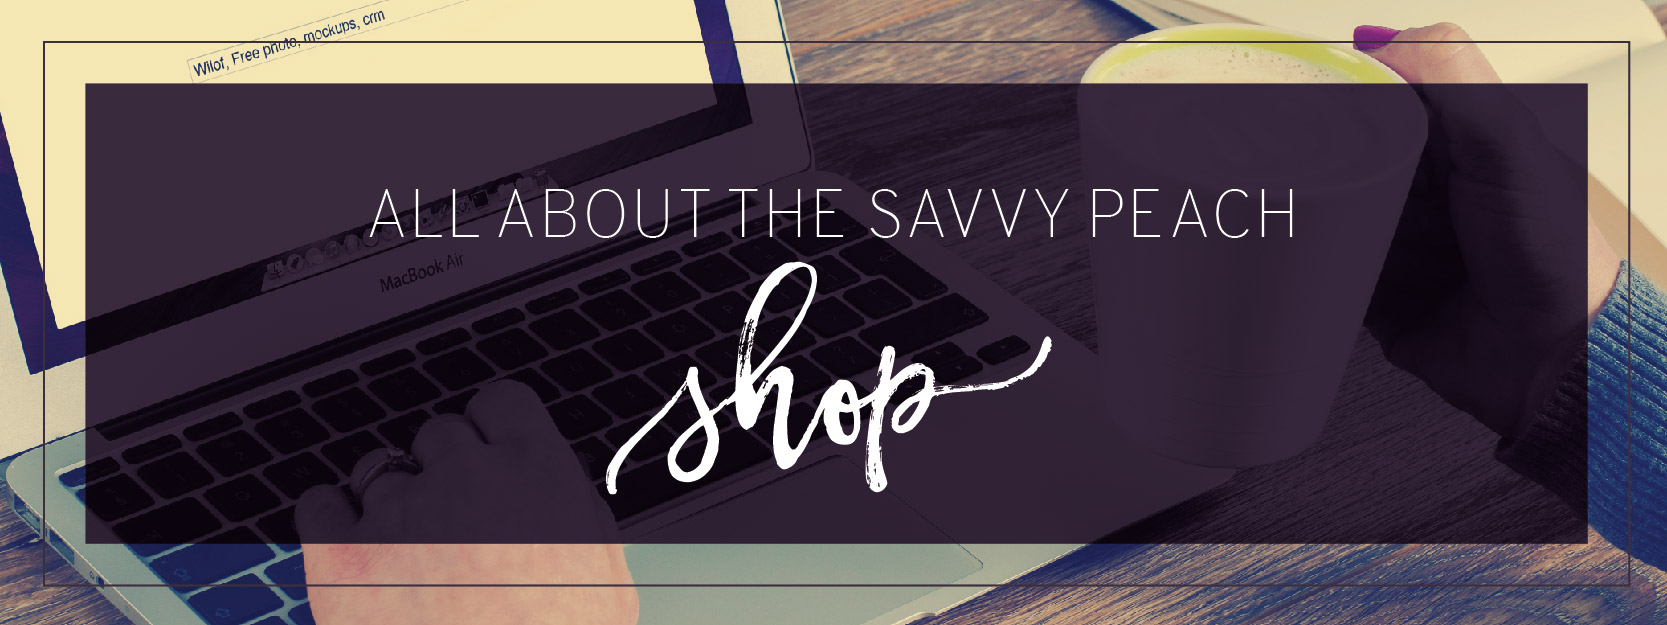 All About The Savvy Peach Shop